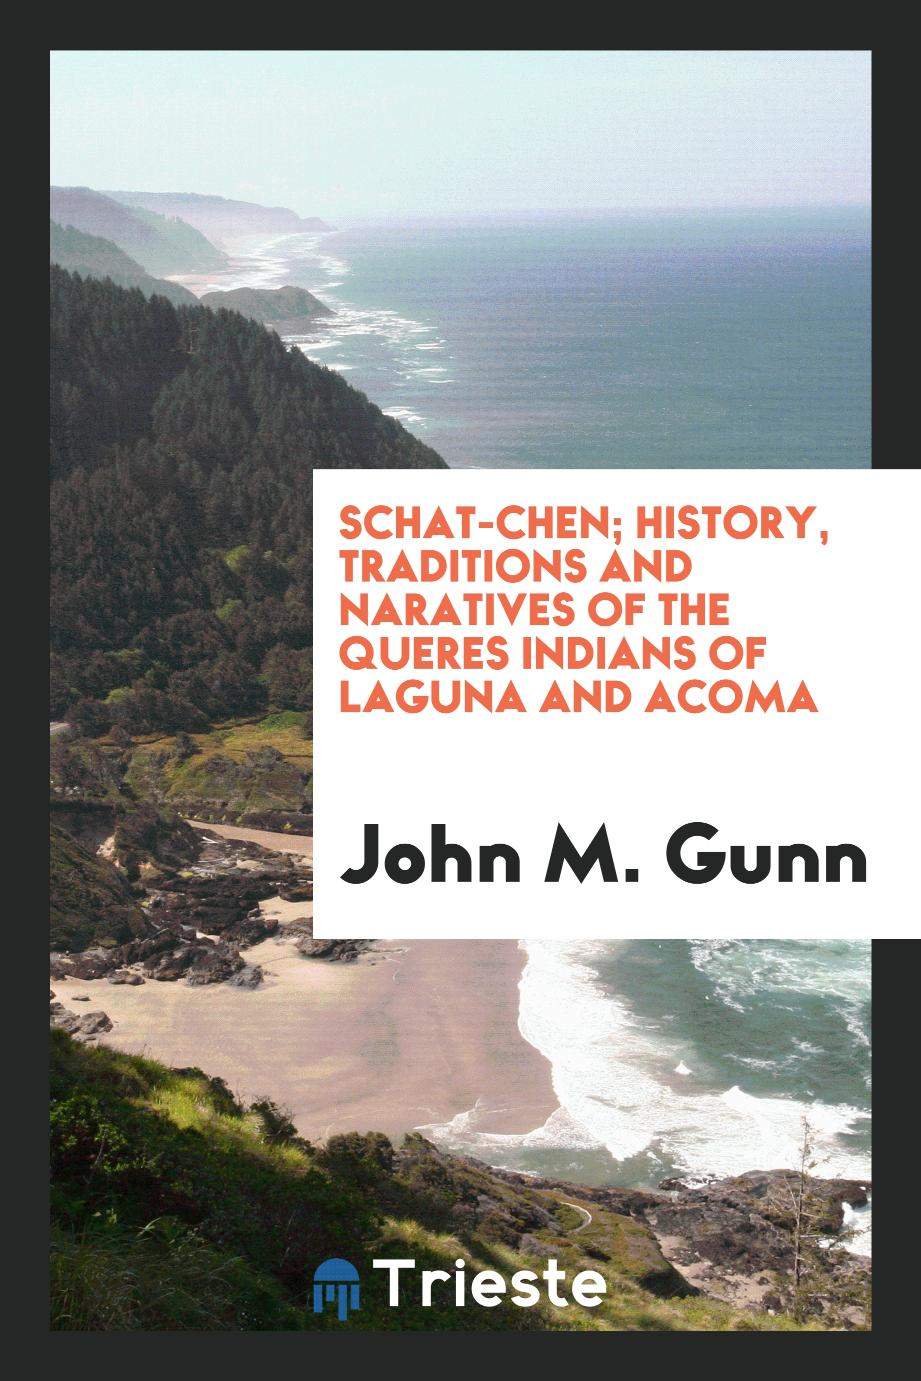 Schat-chen; history, traditions and naratives of the Queres Indians of Laguna and Acoma